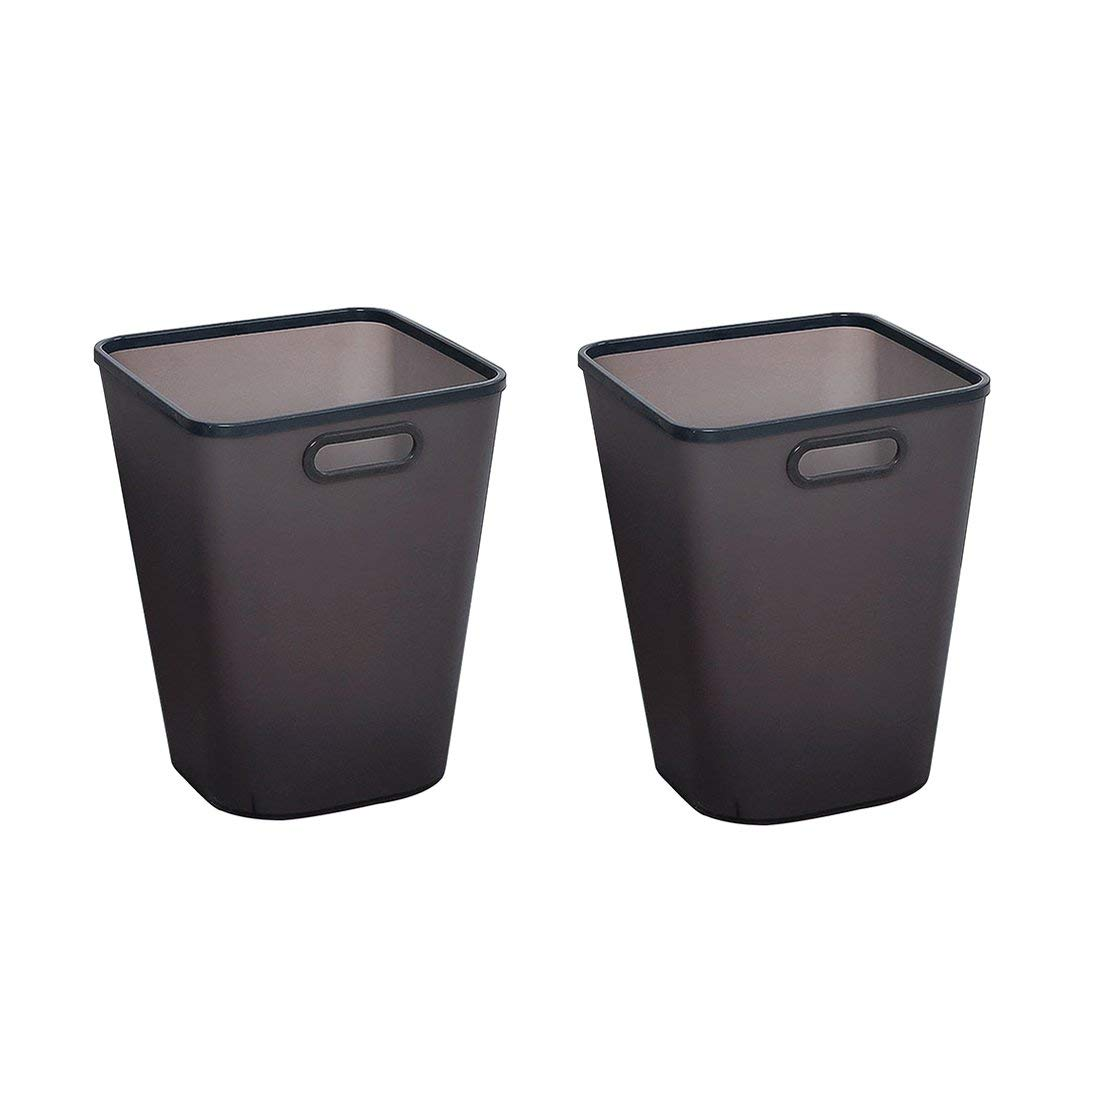 XSHION Trash Can Set of 2, Plastic Waste Paper Basket for Office/Recycle Bins for Home Wastebasket 4 Gallon